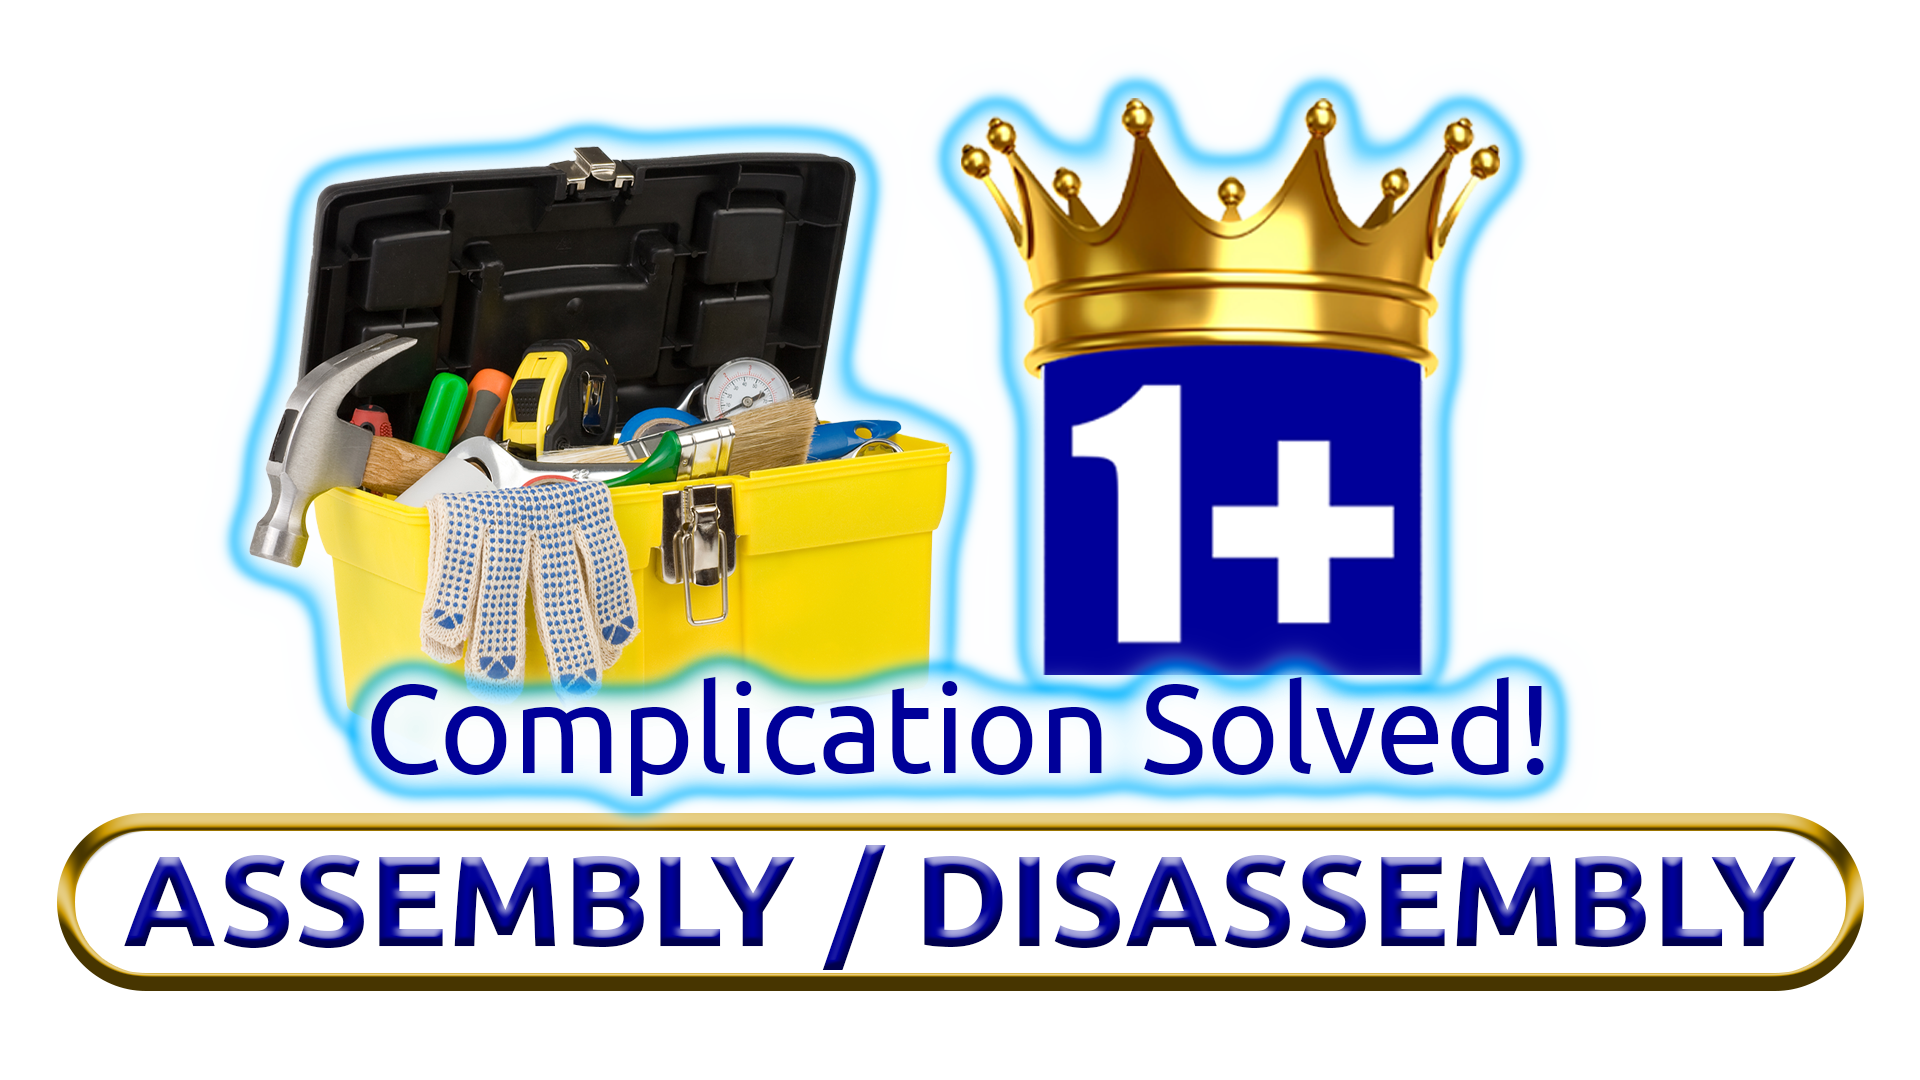 Legendary Assembly Disassembly Services By 1+Movers - Moving - Movers - Move - Houston Texas - Nassau Bay Texas - Seabrook Texas - Kemah Texas 13